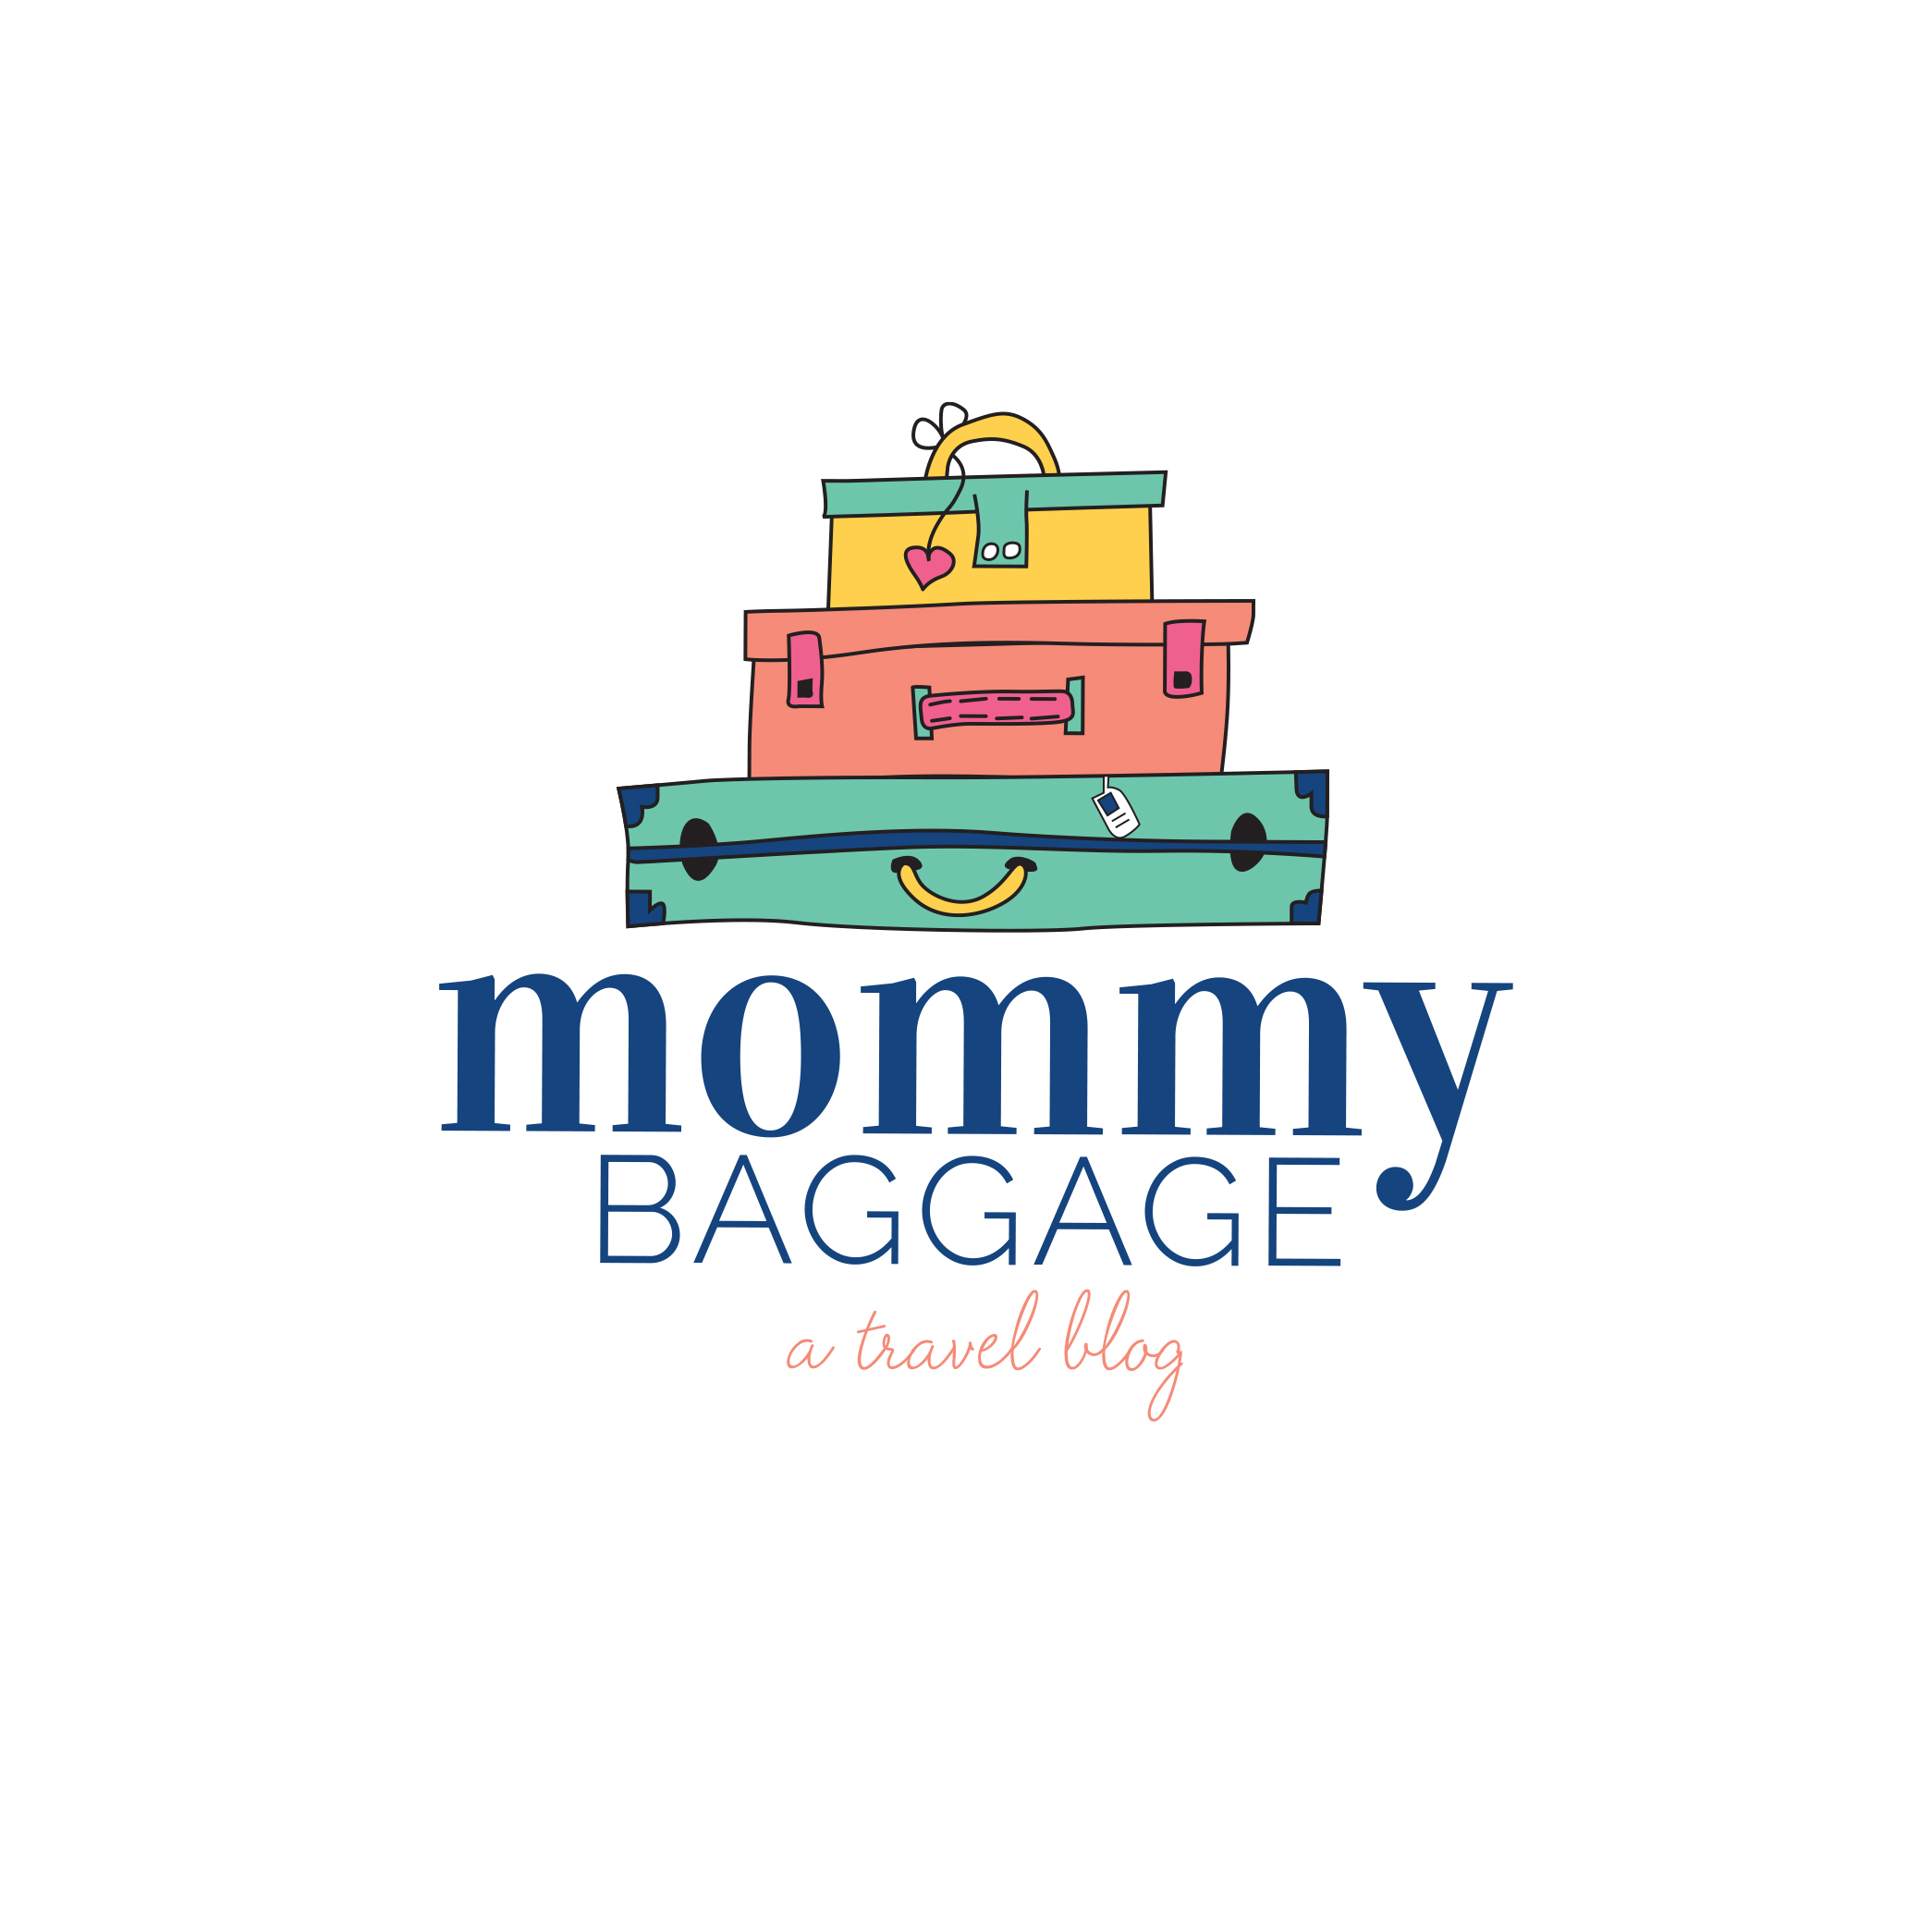 Mommy Baggage: A Travel Blog